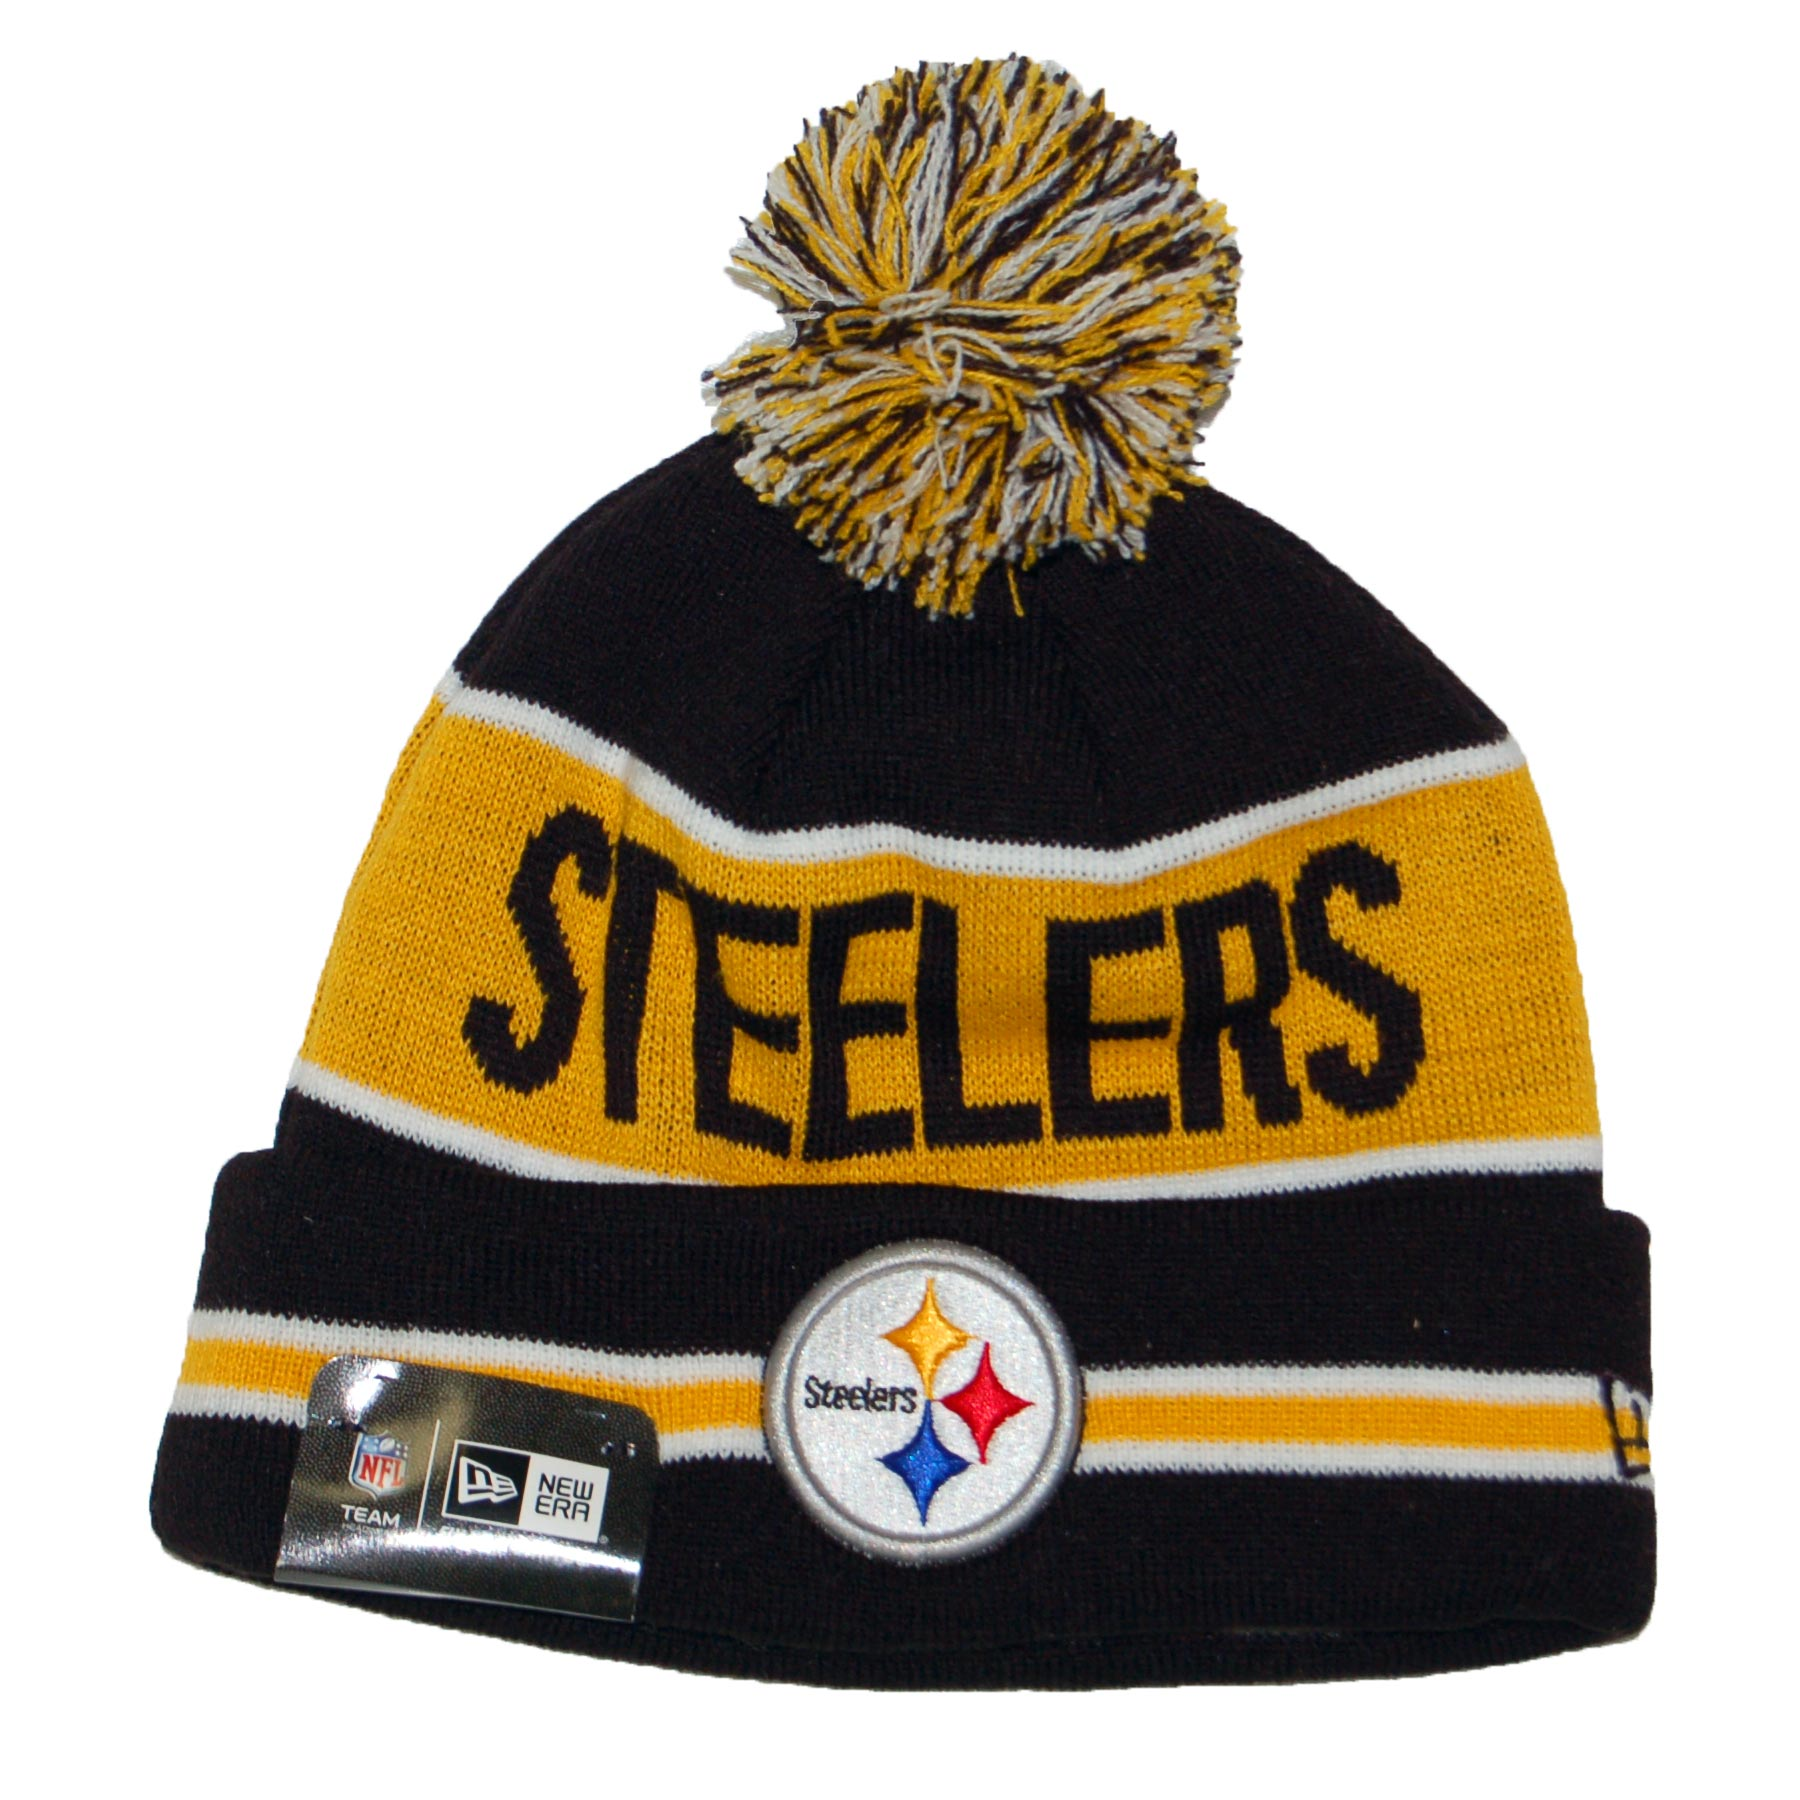 ef04c70c458 ... denmark pittsburgh steelers nfl the coach knit hat icejerseys canada  official fan shop 5c523 b329d where can i buy authentic nfl beanies hats ...